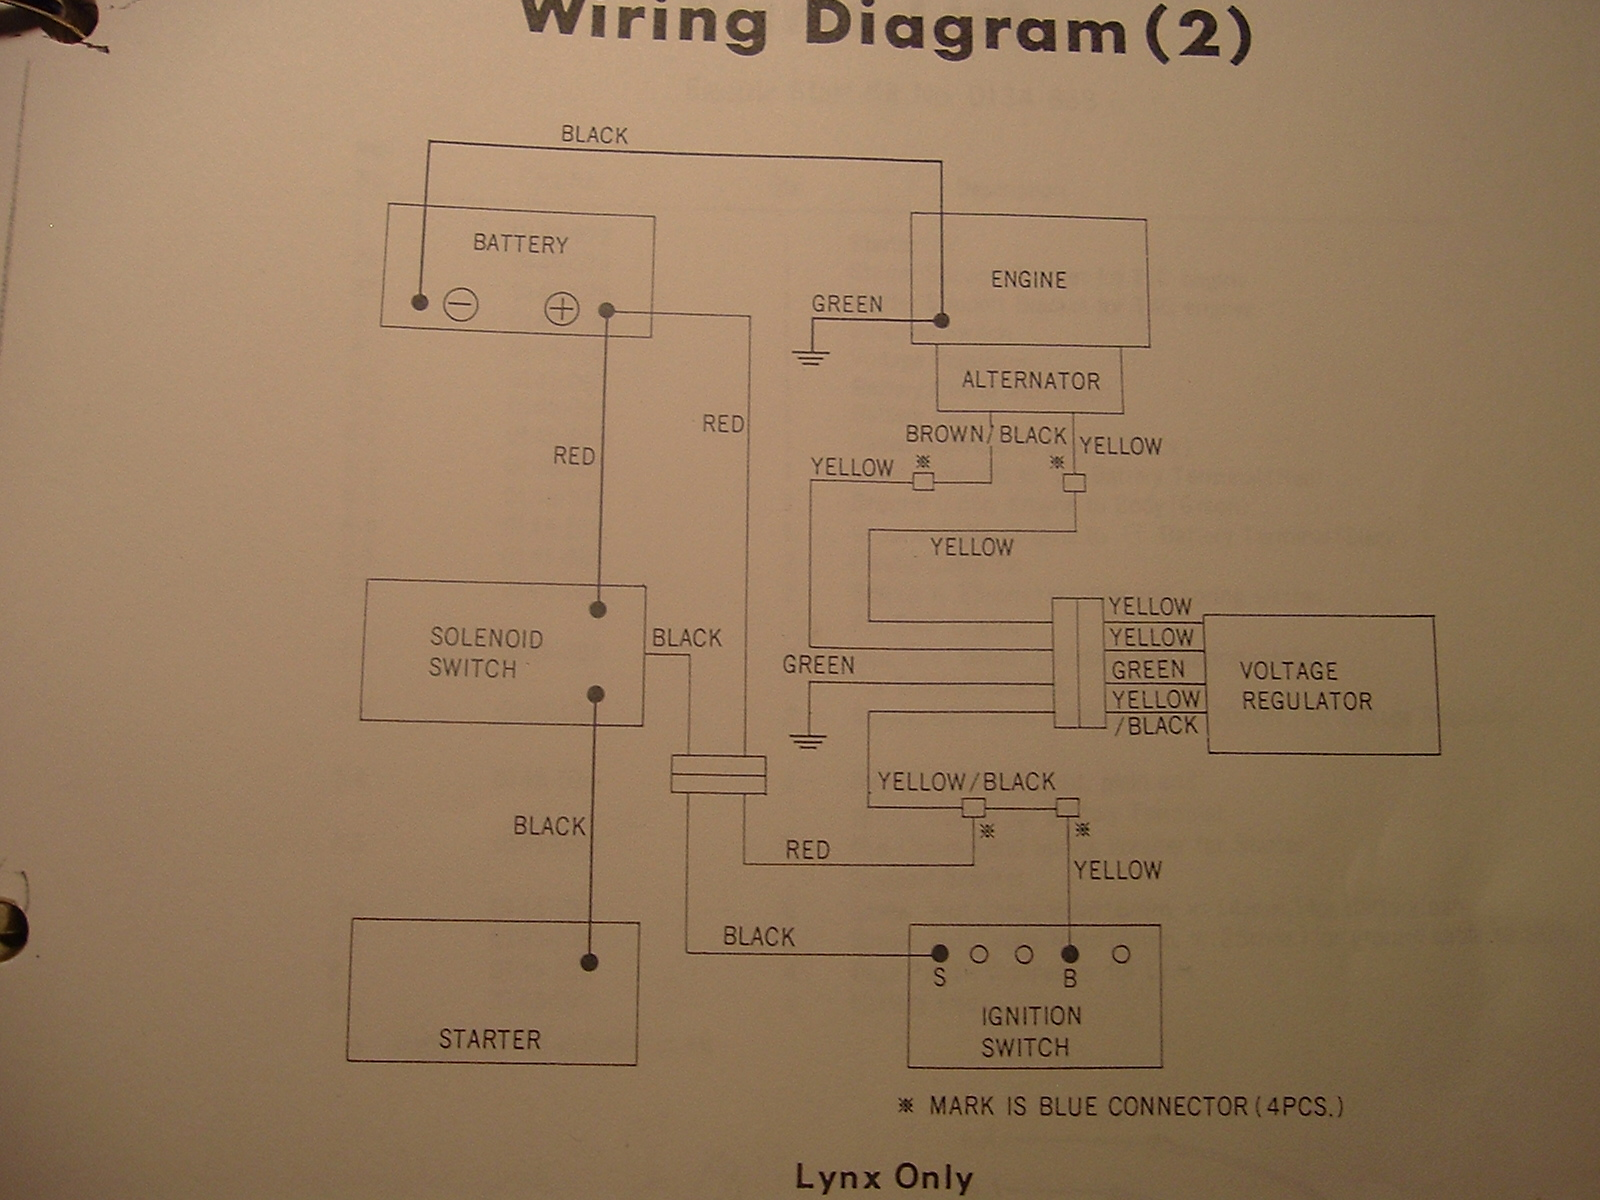 Wiring Diagram Colors Wiring Free Engine Image For User Manual